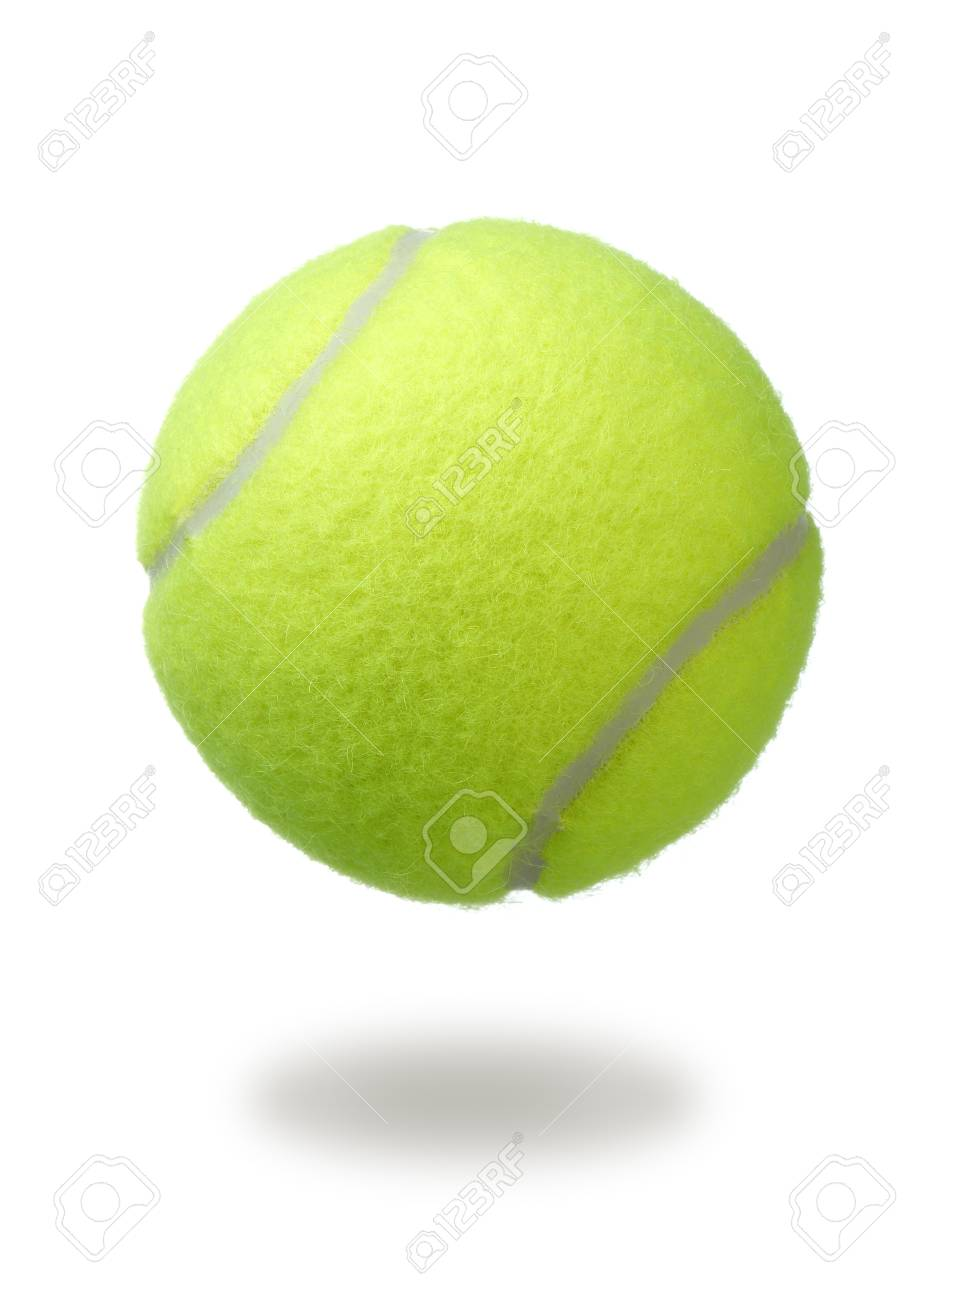 tennis ball isolated on white background. green color tennis ball. - 69686222